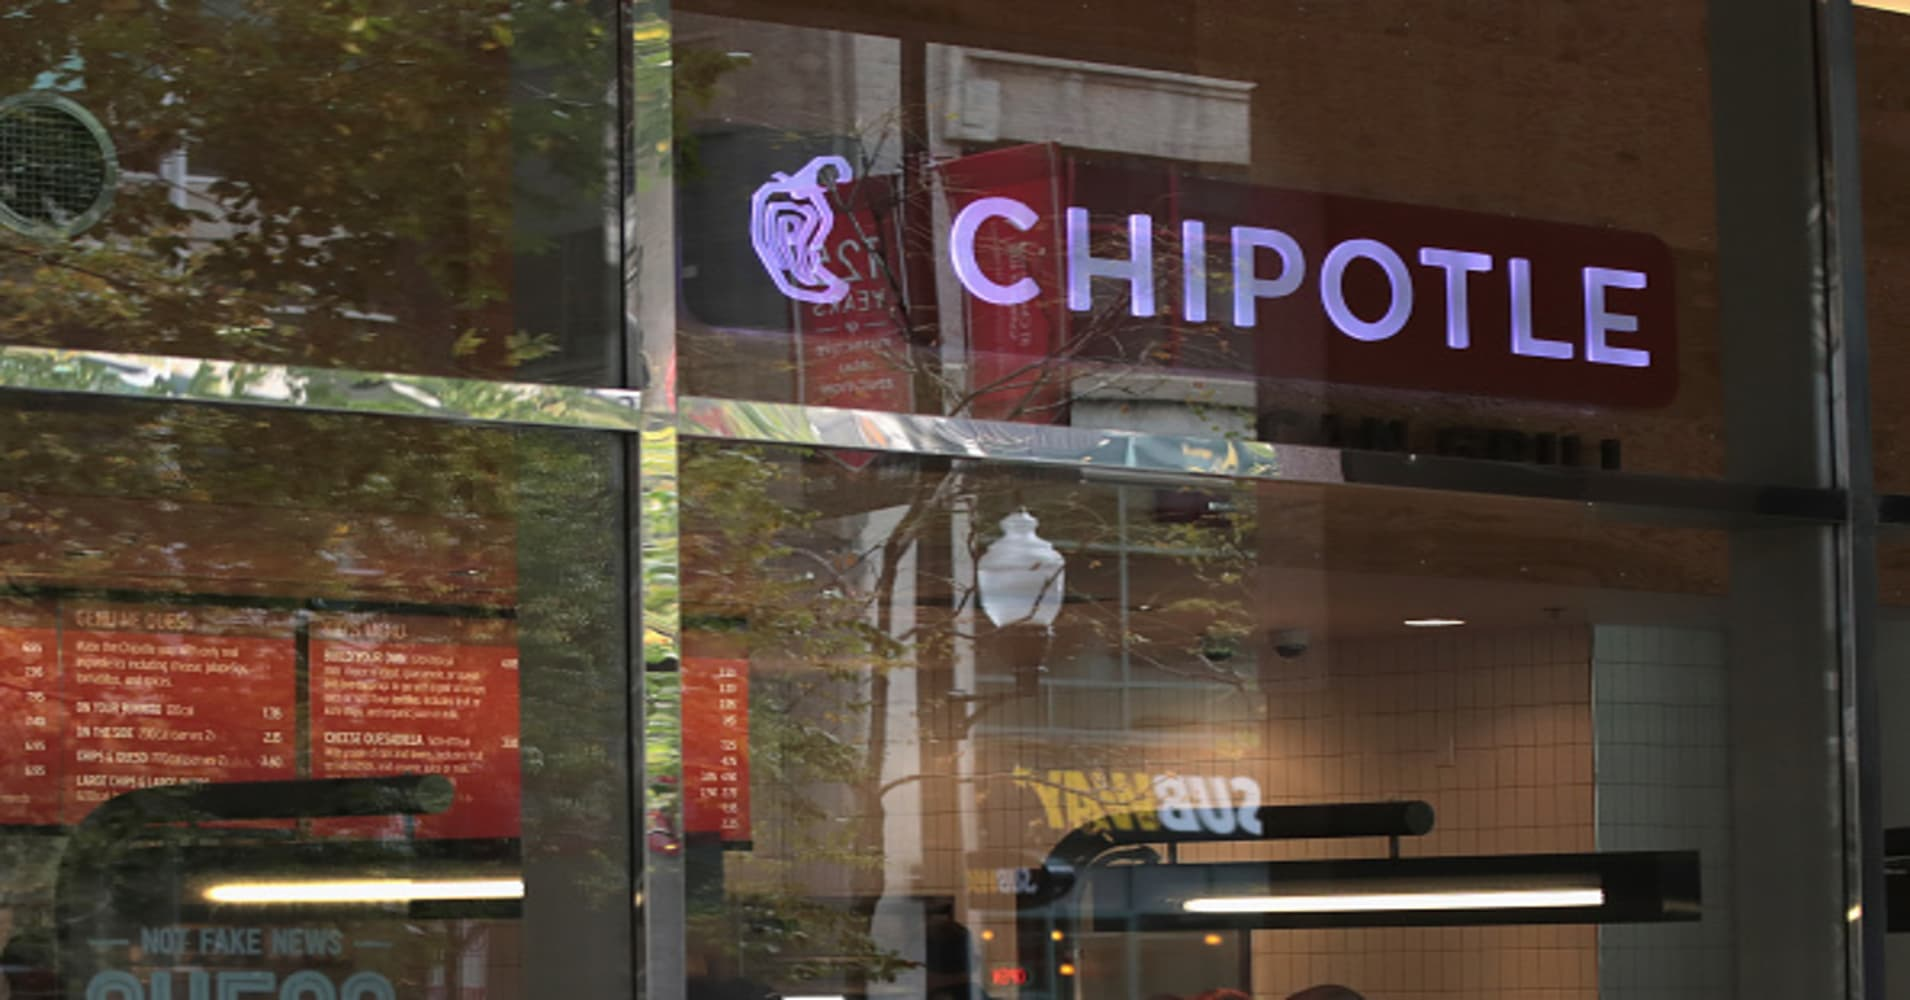 Chipotle CEO on digital strategy for food